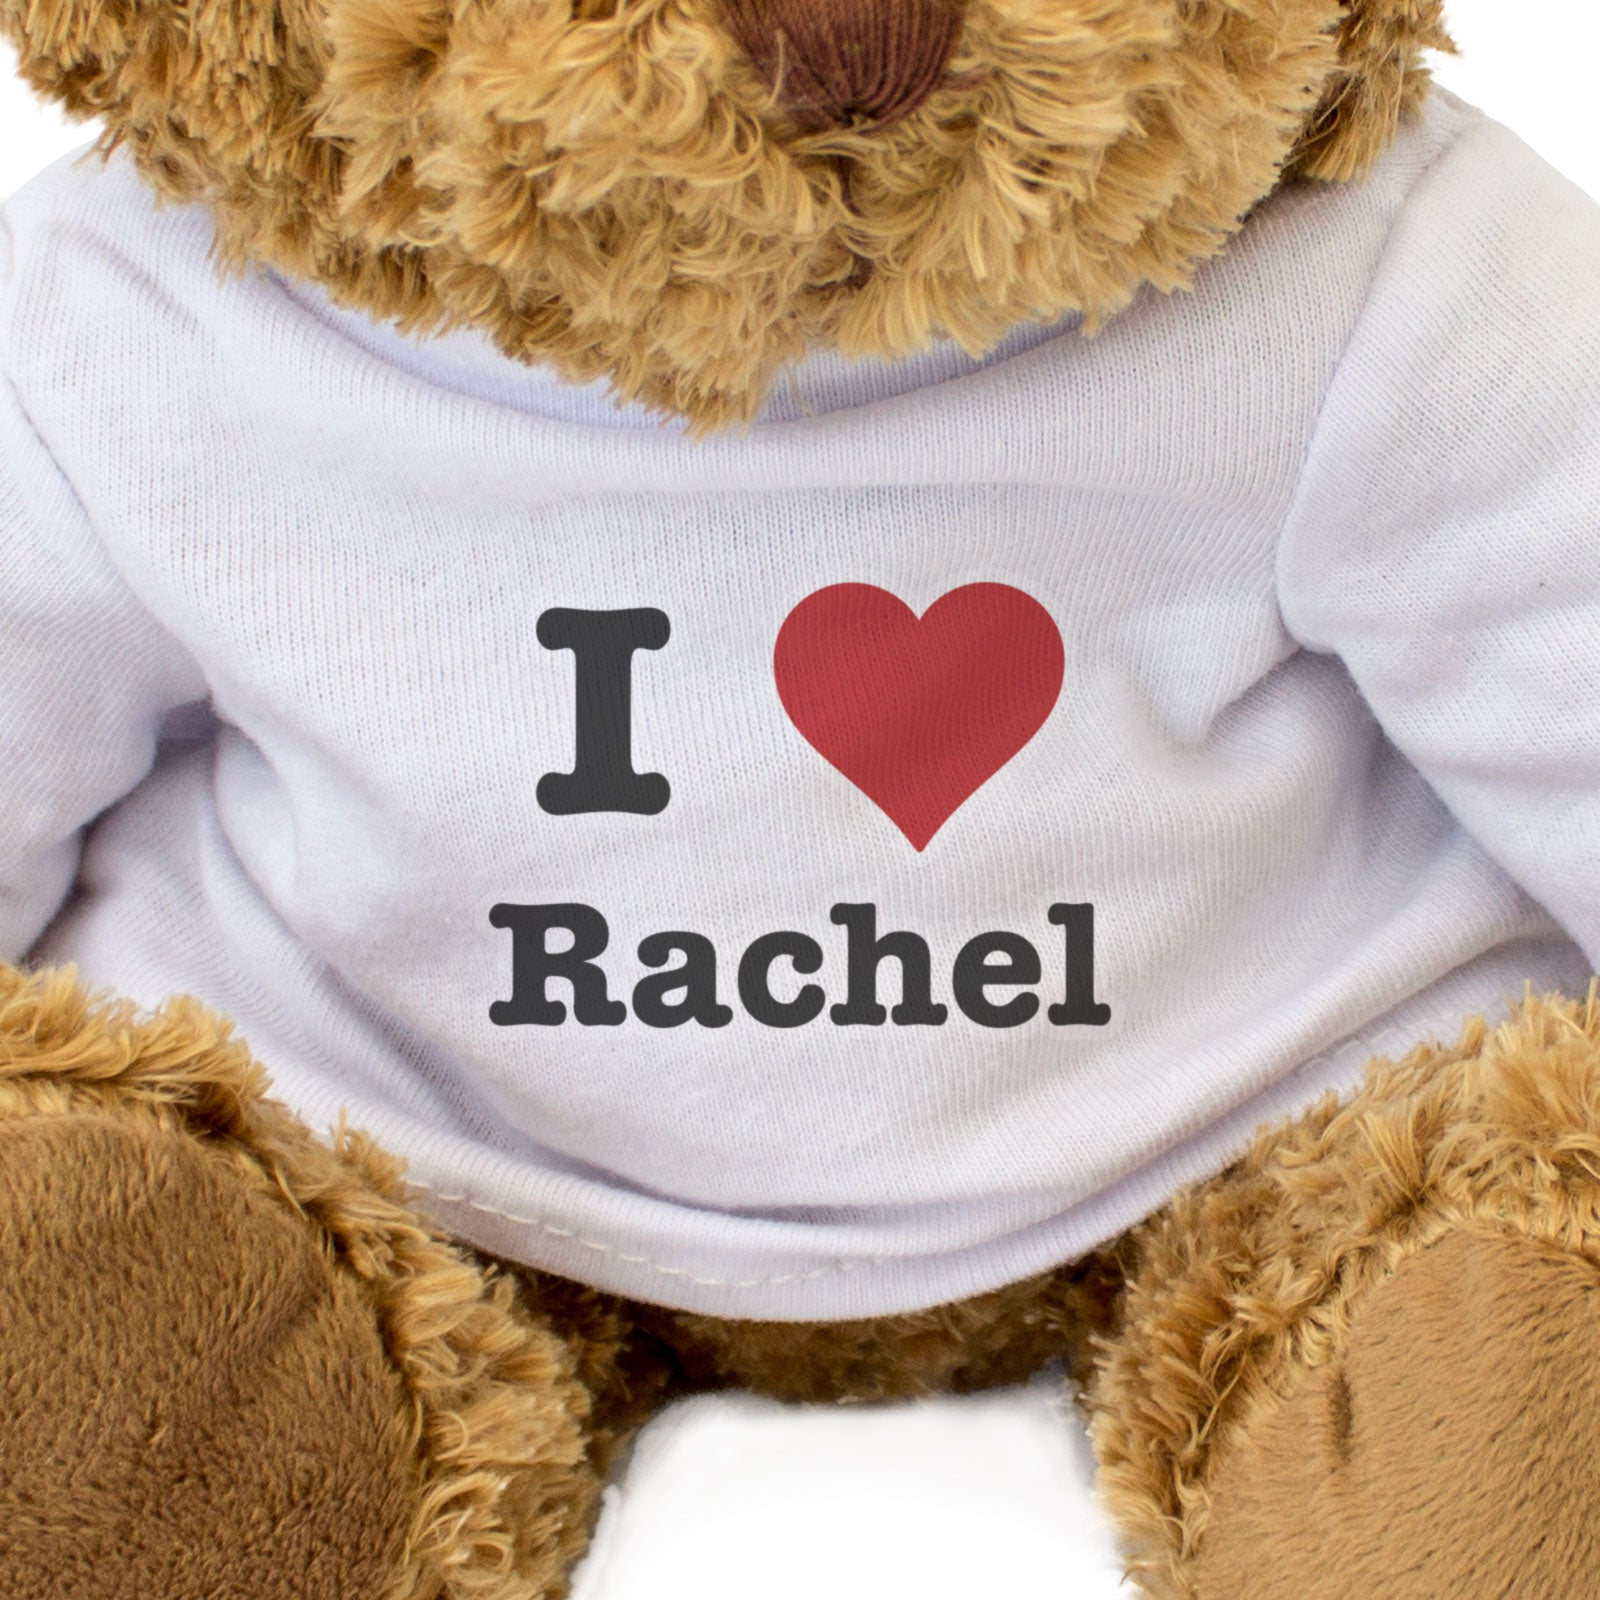 I Love Rachel - Teddy Bear